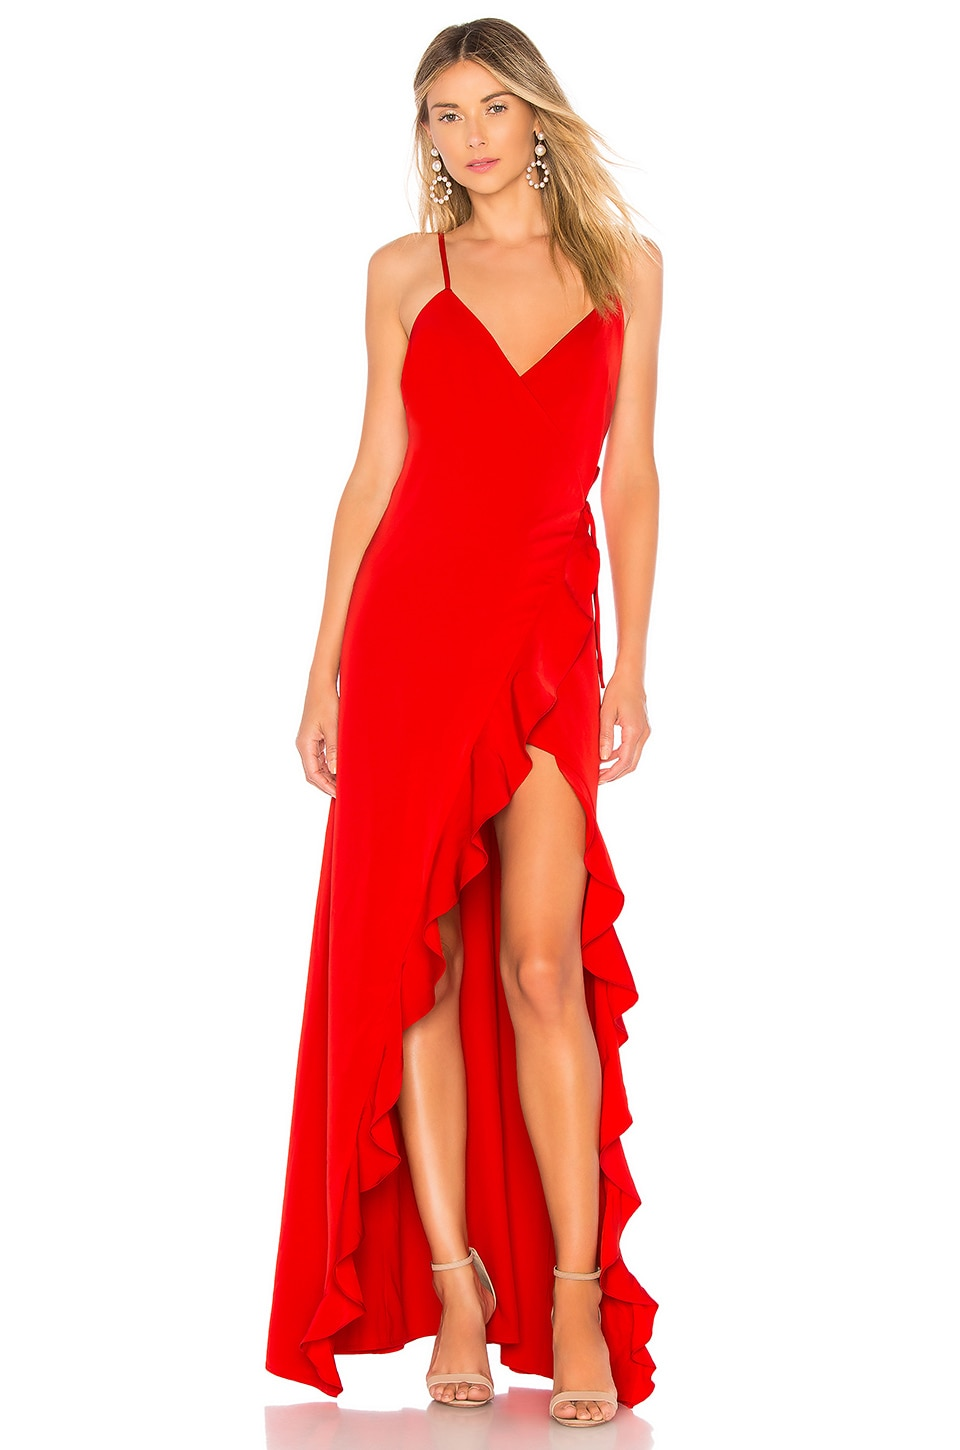 Privacy Please Pelican Dress in Red